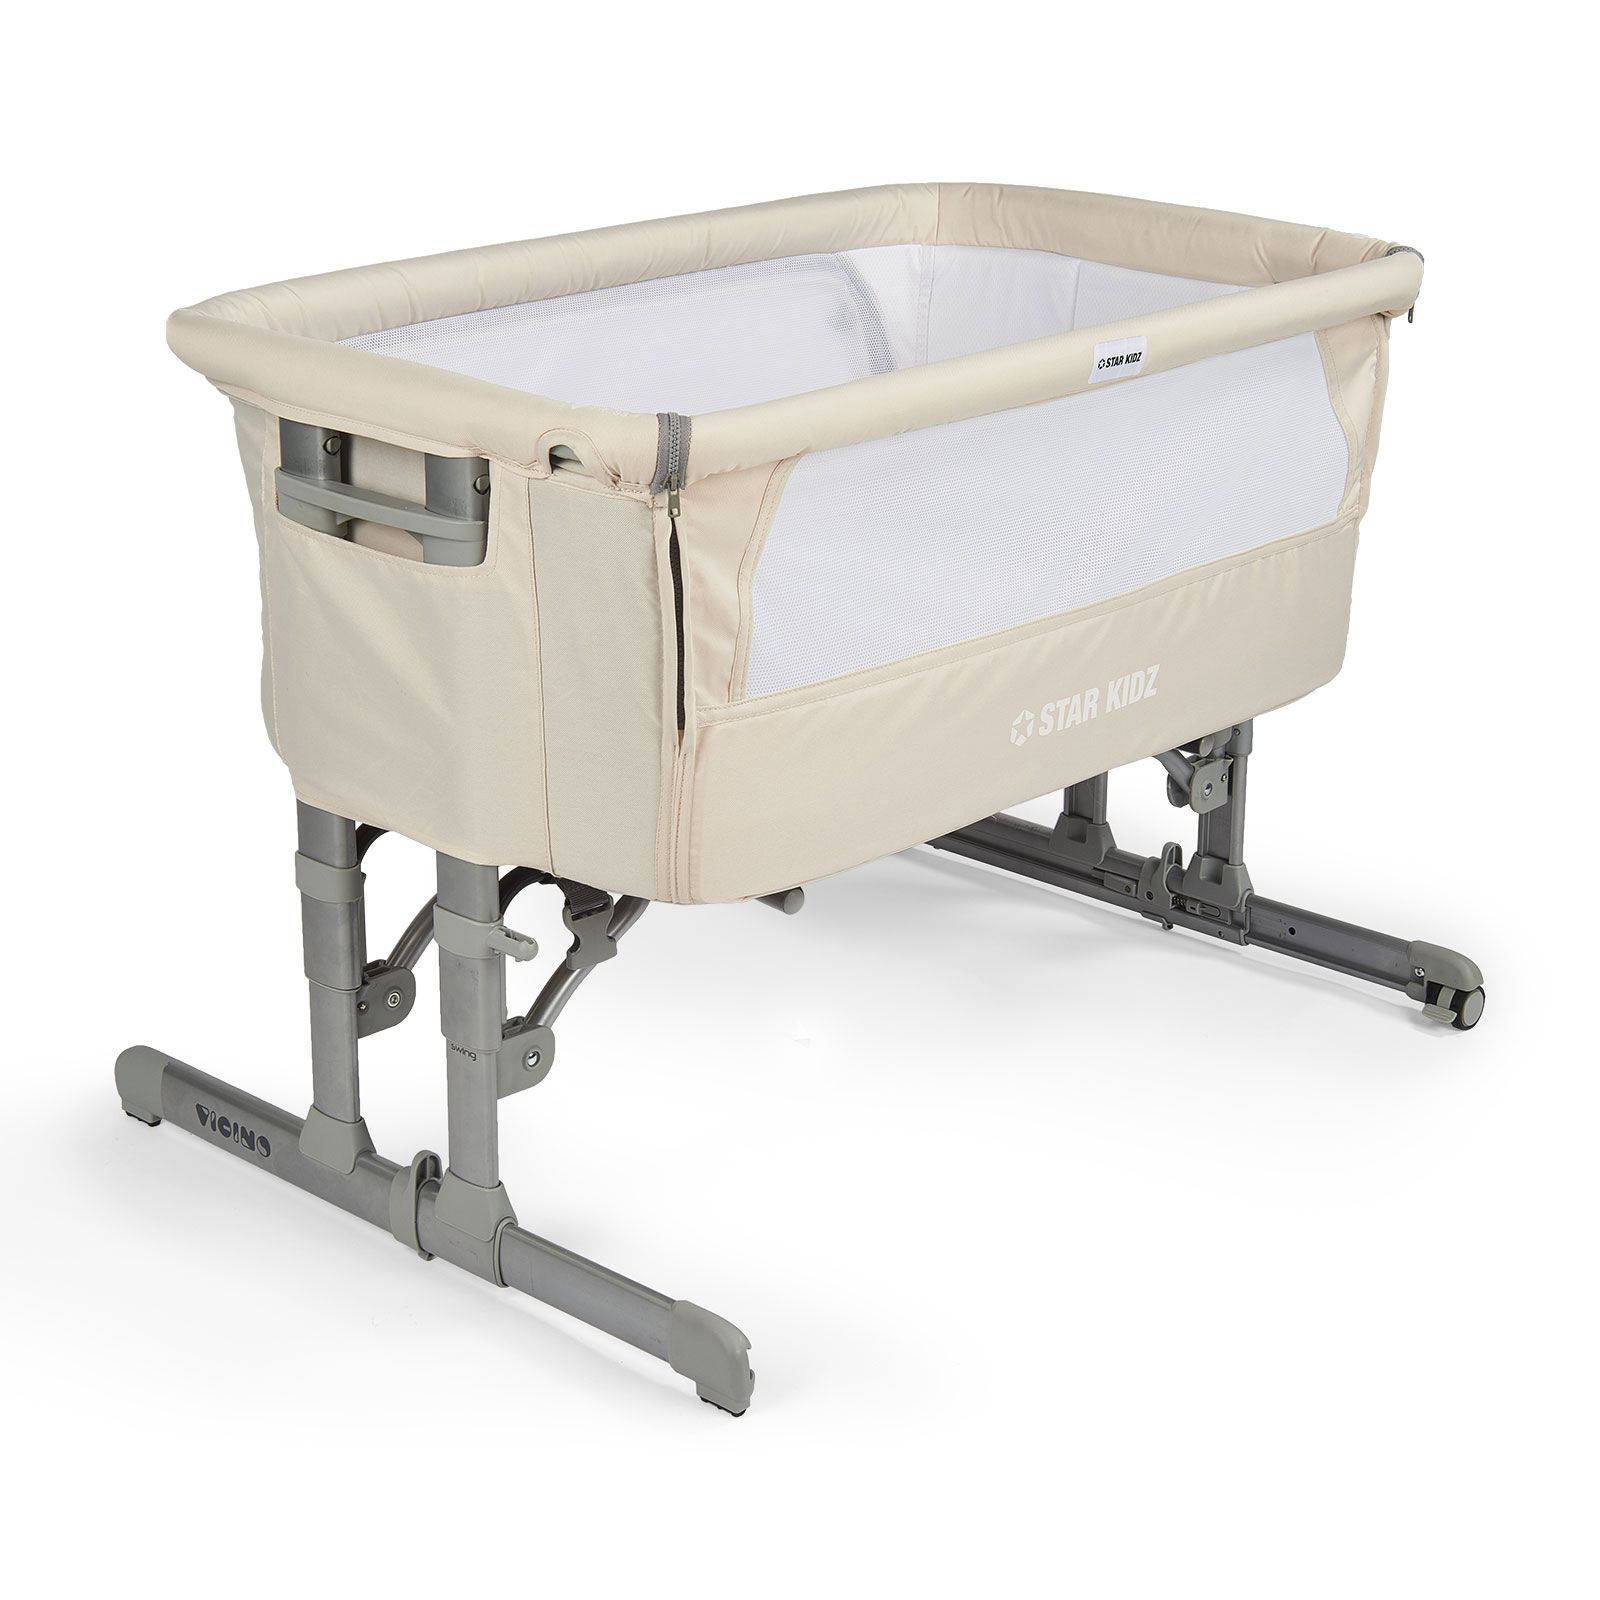 The Infant Rocker Bassinet Is Lightweight And The 2 Swivel Wheels Fitted With Brakes Helps Us To Easily Transport It Re Bassinet Baby Bassinet Bedside Bassinet